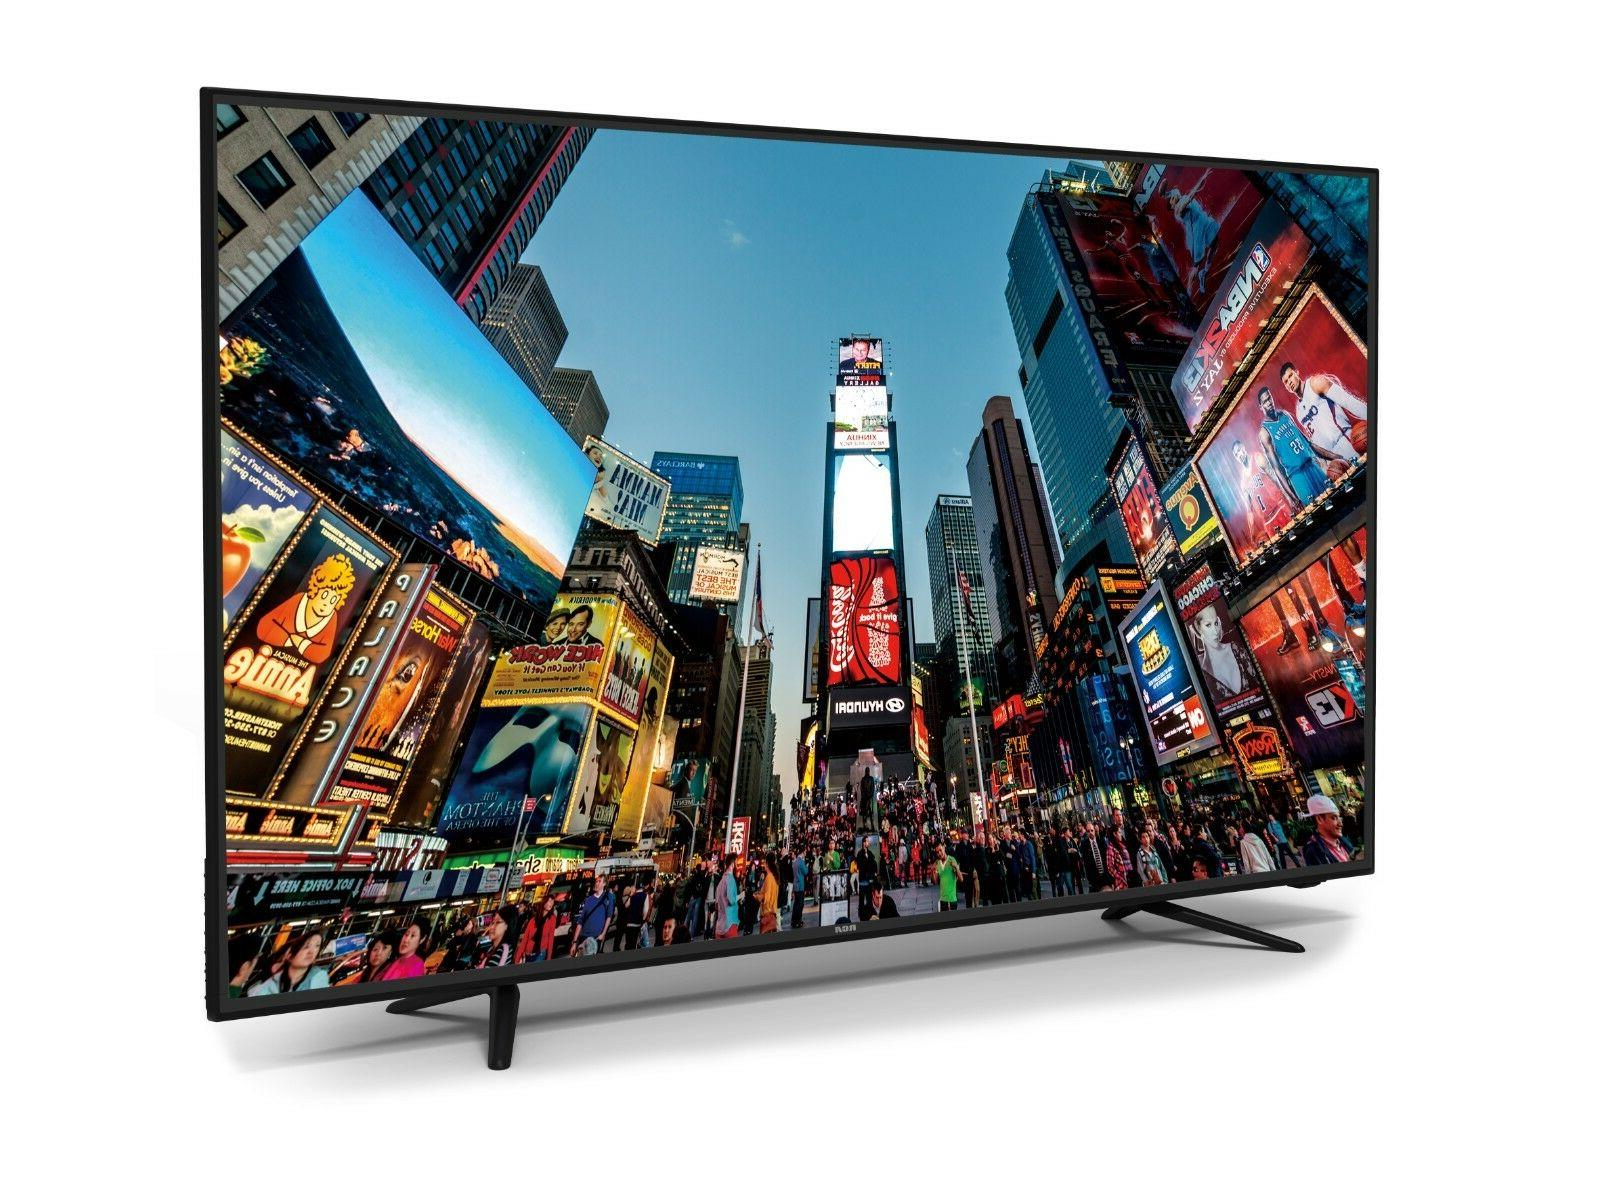 RCA Class Ultra HD LED TV brand